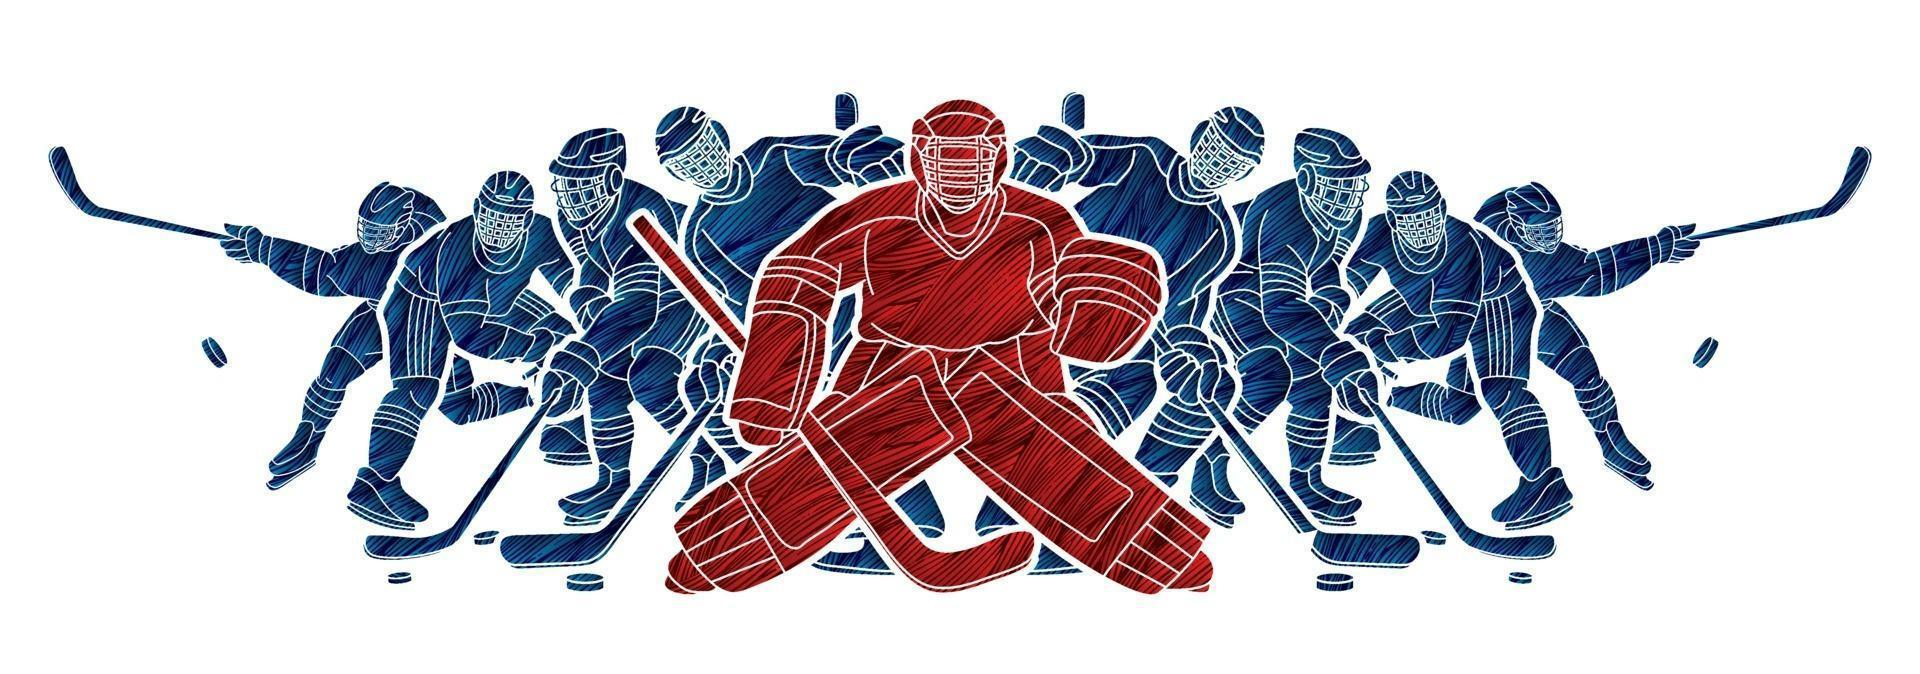 Group of Ice Hockey Players vector